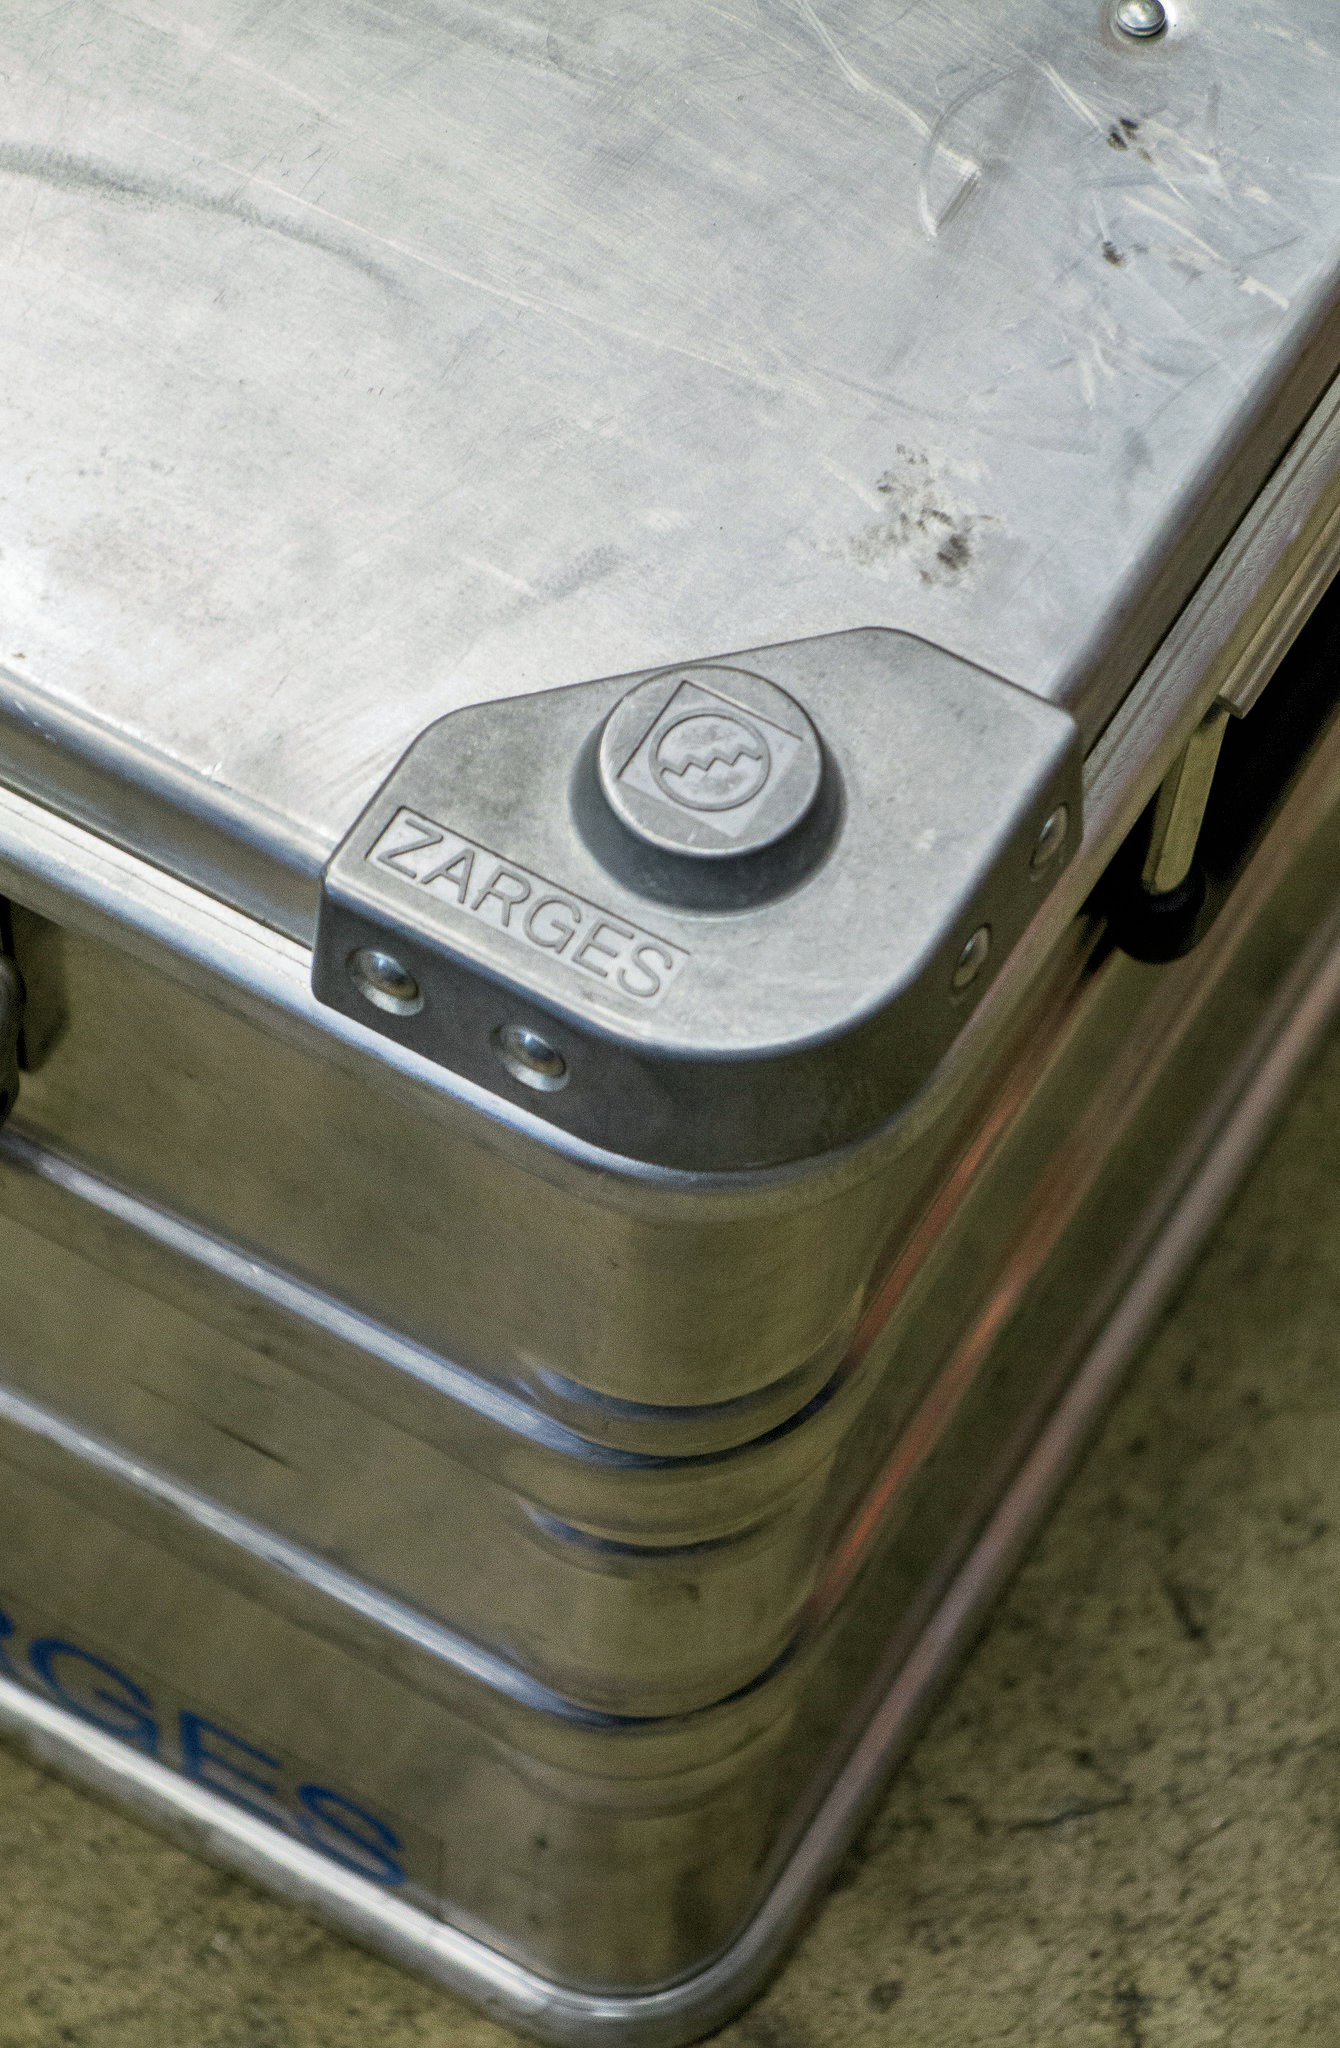 The feet on Zarges cases make them easy to stack without concern about them sliding around. Tie-downs through the handles hold them securely in place and allow you to still open the lid and access the contents.